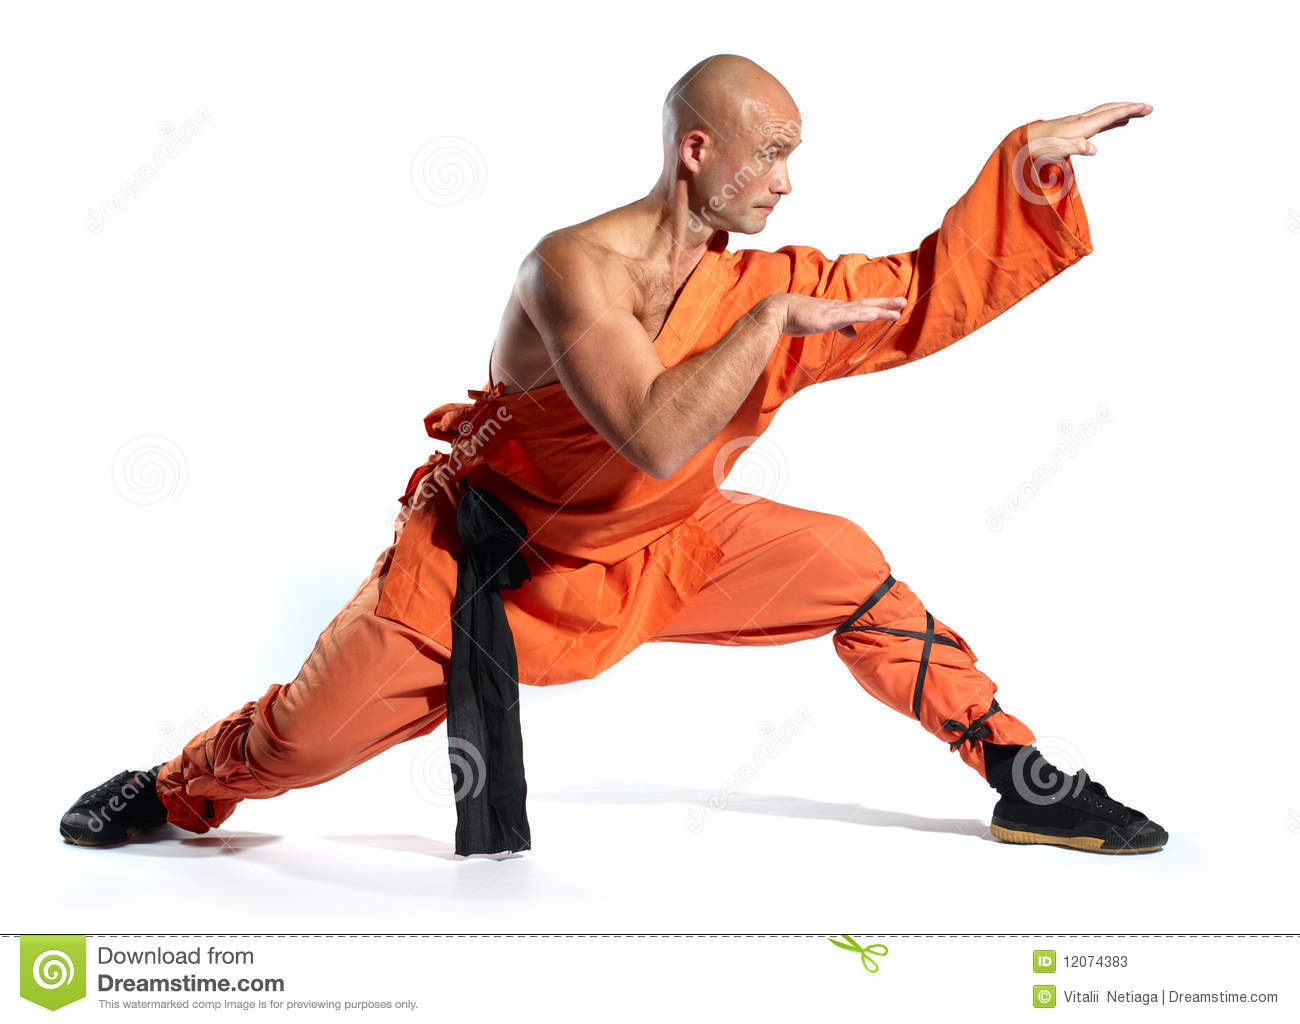 Shaolin warriors monk on white background.